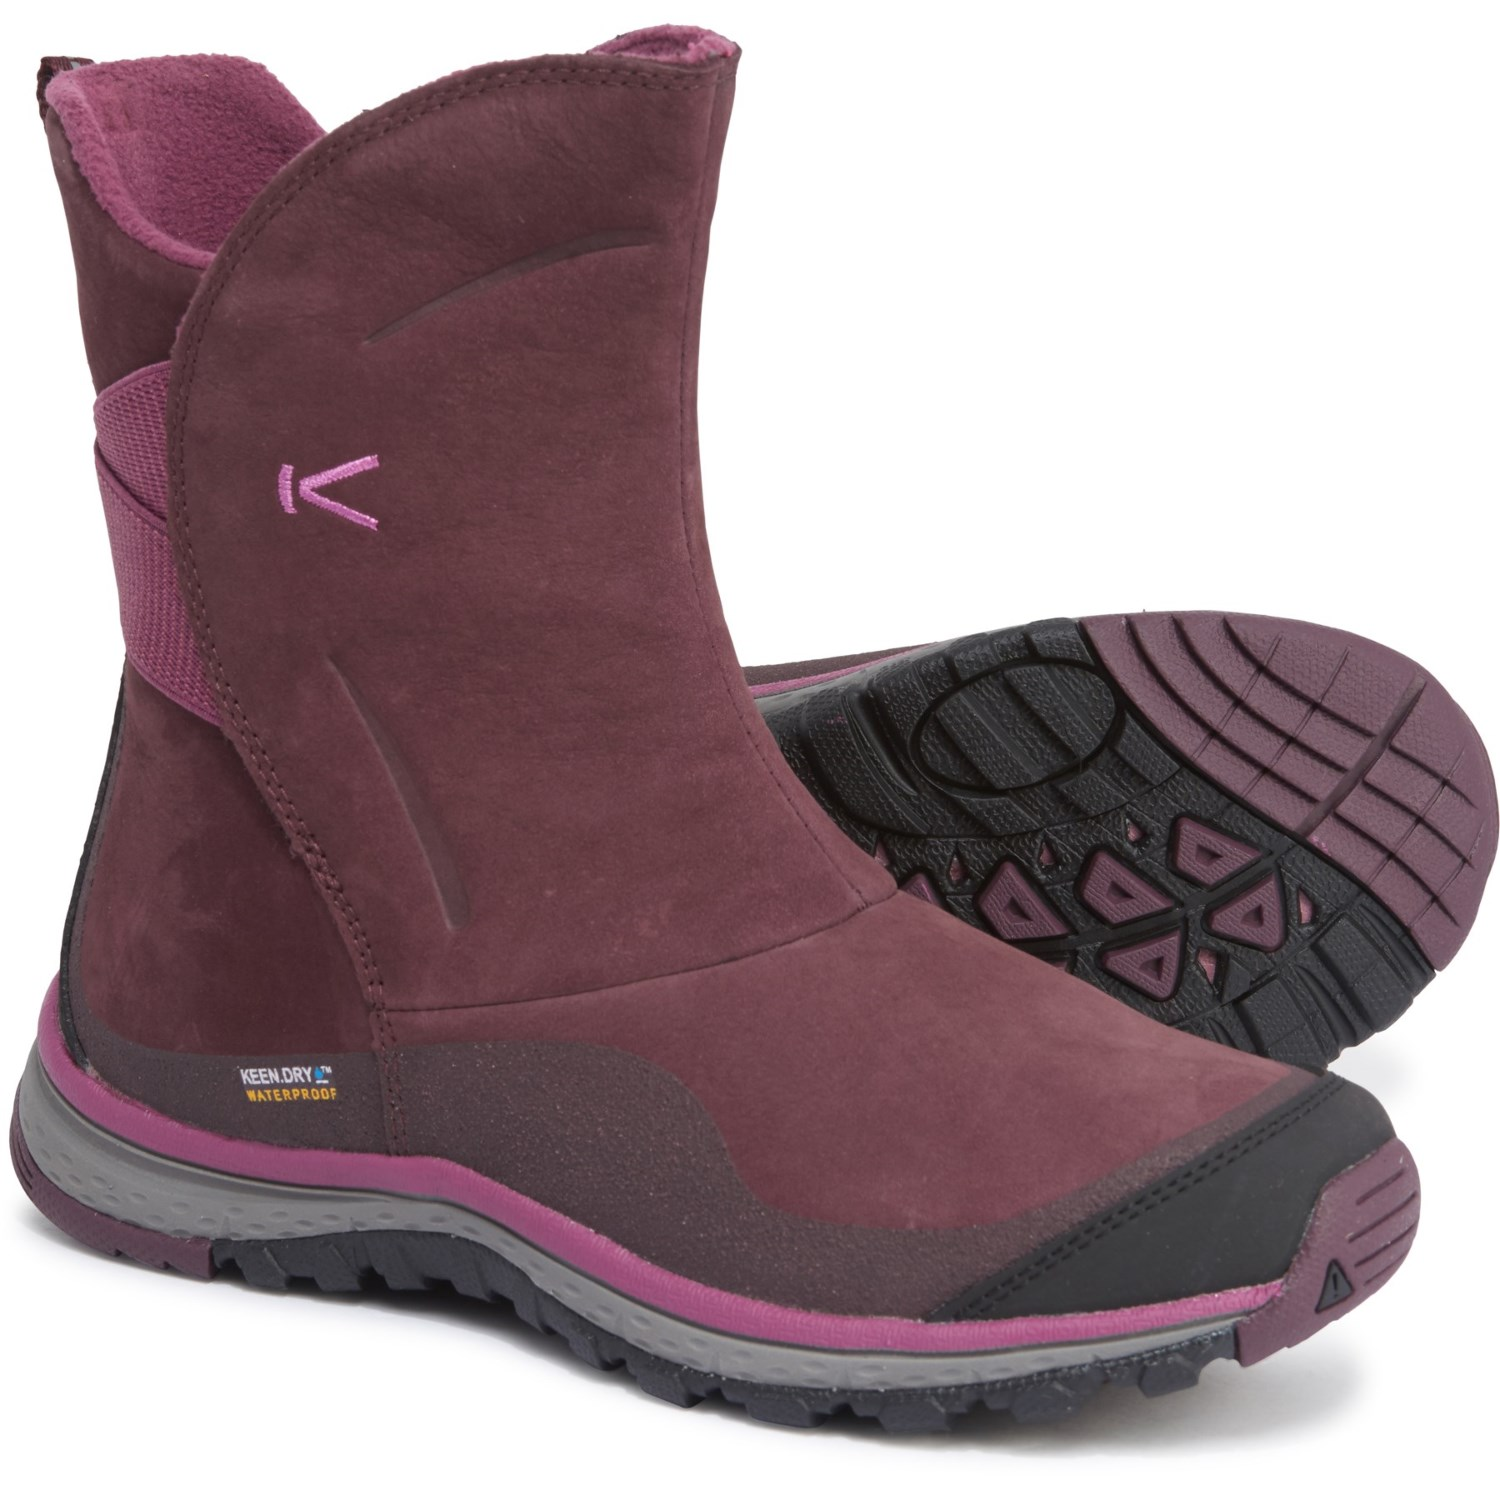 quality design 8928f a2719 Keen Winterterra Lea Slip-On Boots (For Women) - Save 33%